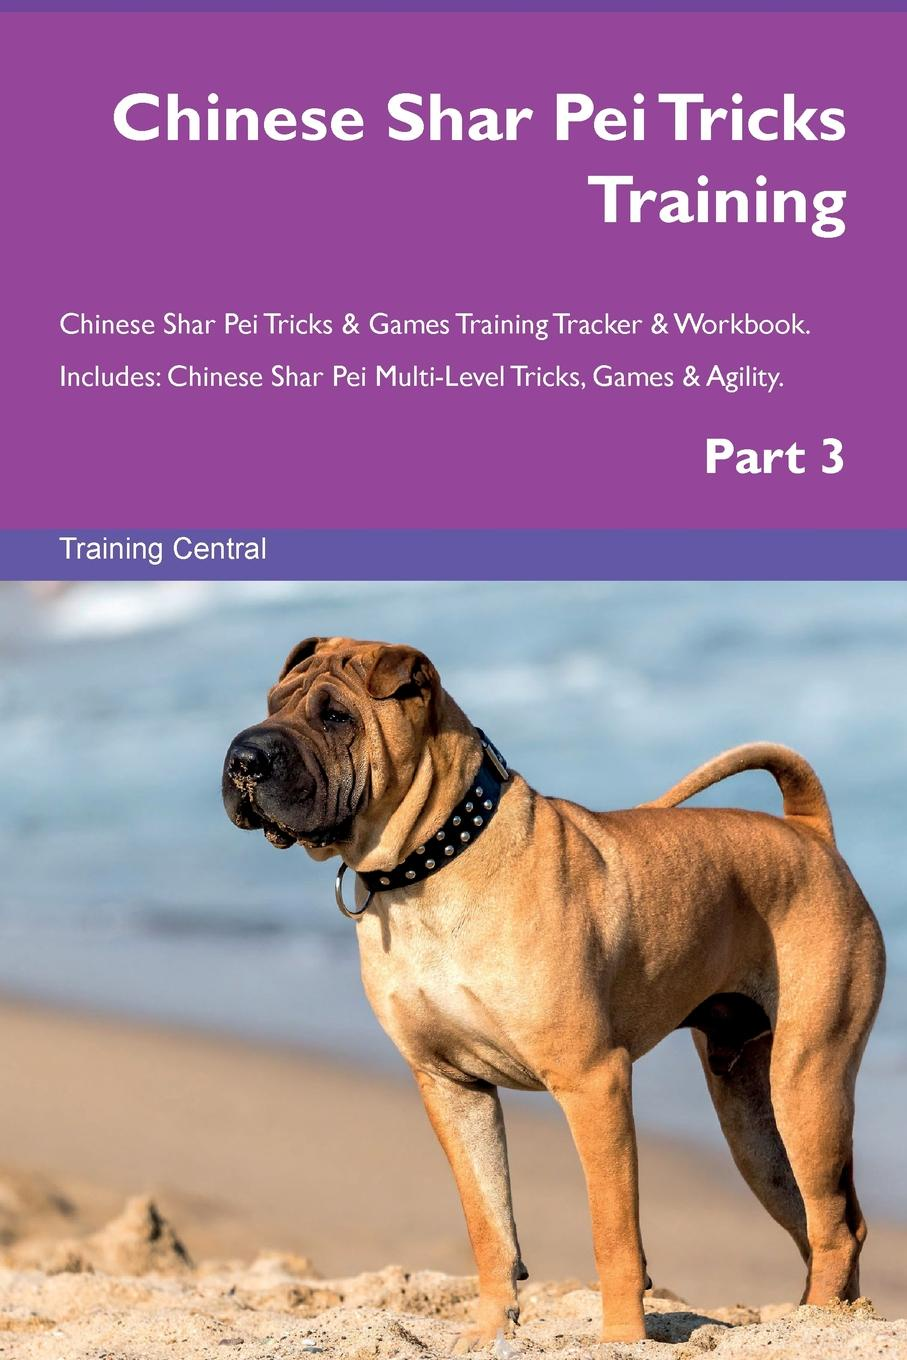 Training Central Chinese Shar Pei Tricks Training Chinese Shar Pei Tricks . Games Training Tracker . Workbook. Includes. Chinese Shar Pei Multi-Level Tricks, Games . Agility. Part 3 large 100cm shar pei dog plush toy stuffed toy doll christmas gift w4735